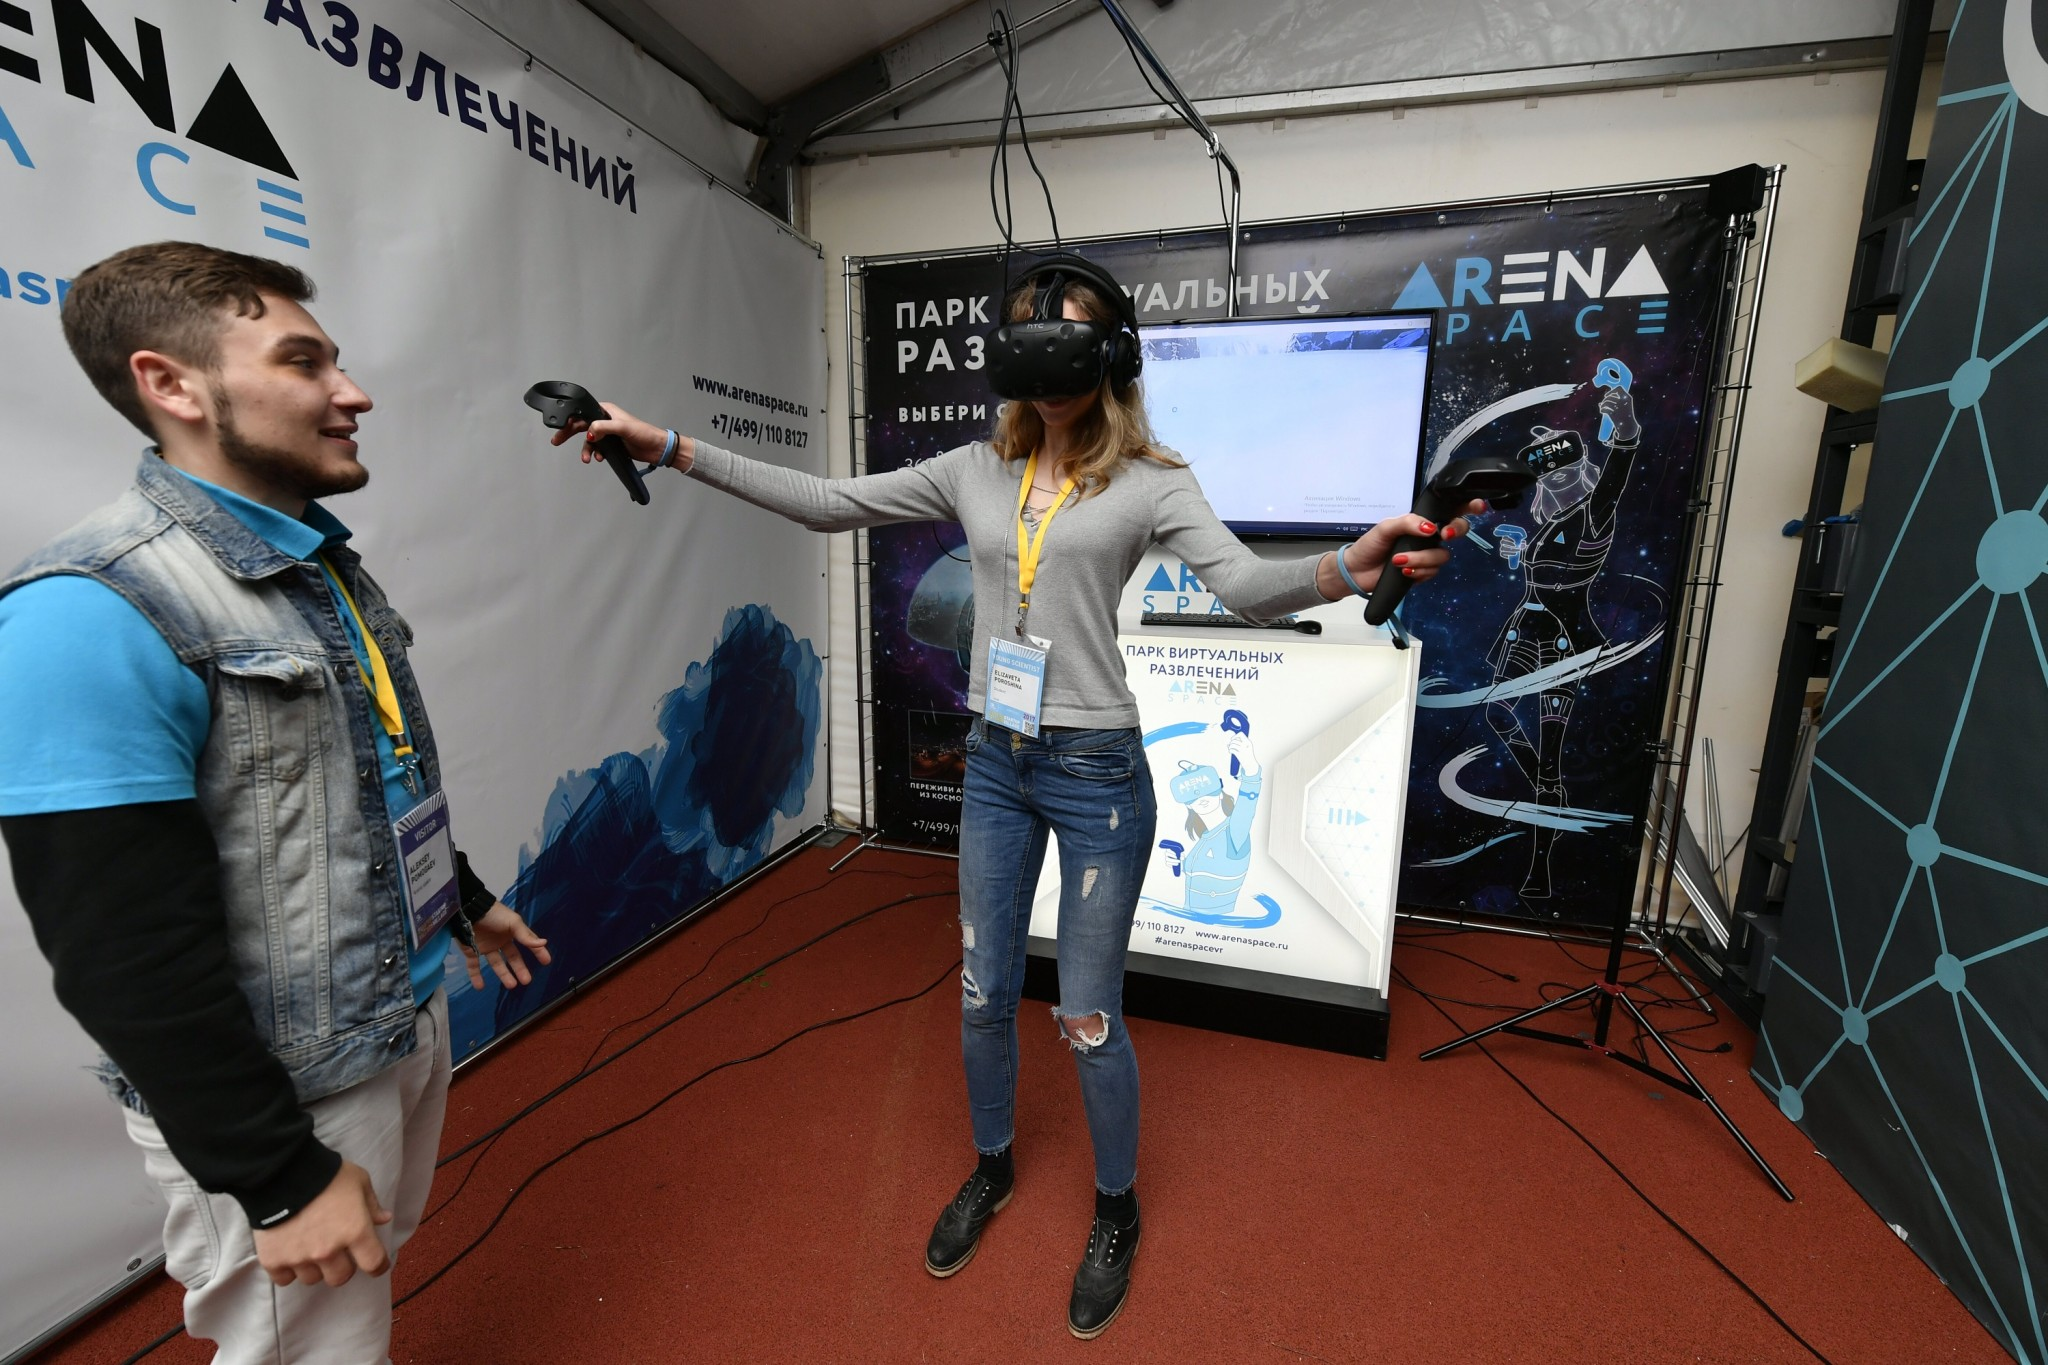 A young scientist tests out a virtual reality mask at the Startup Village.